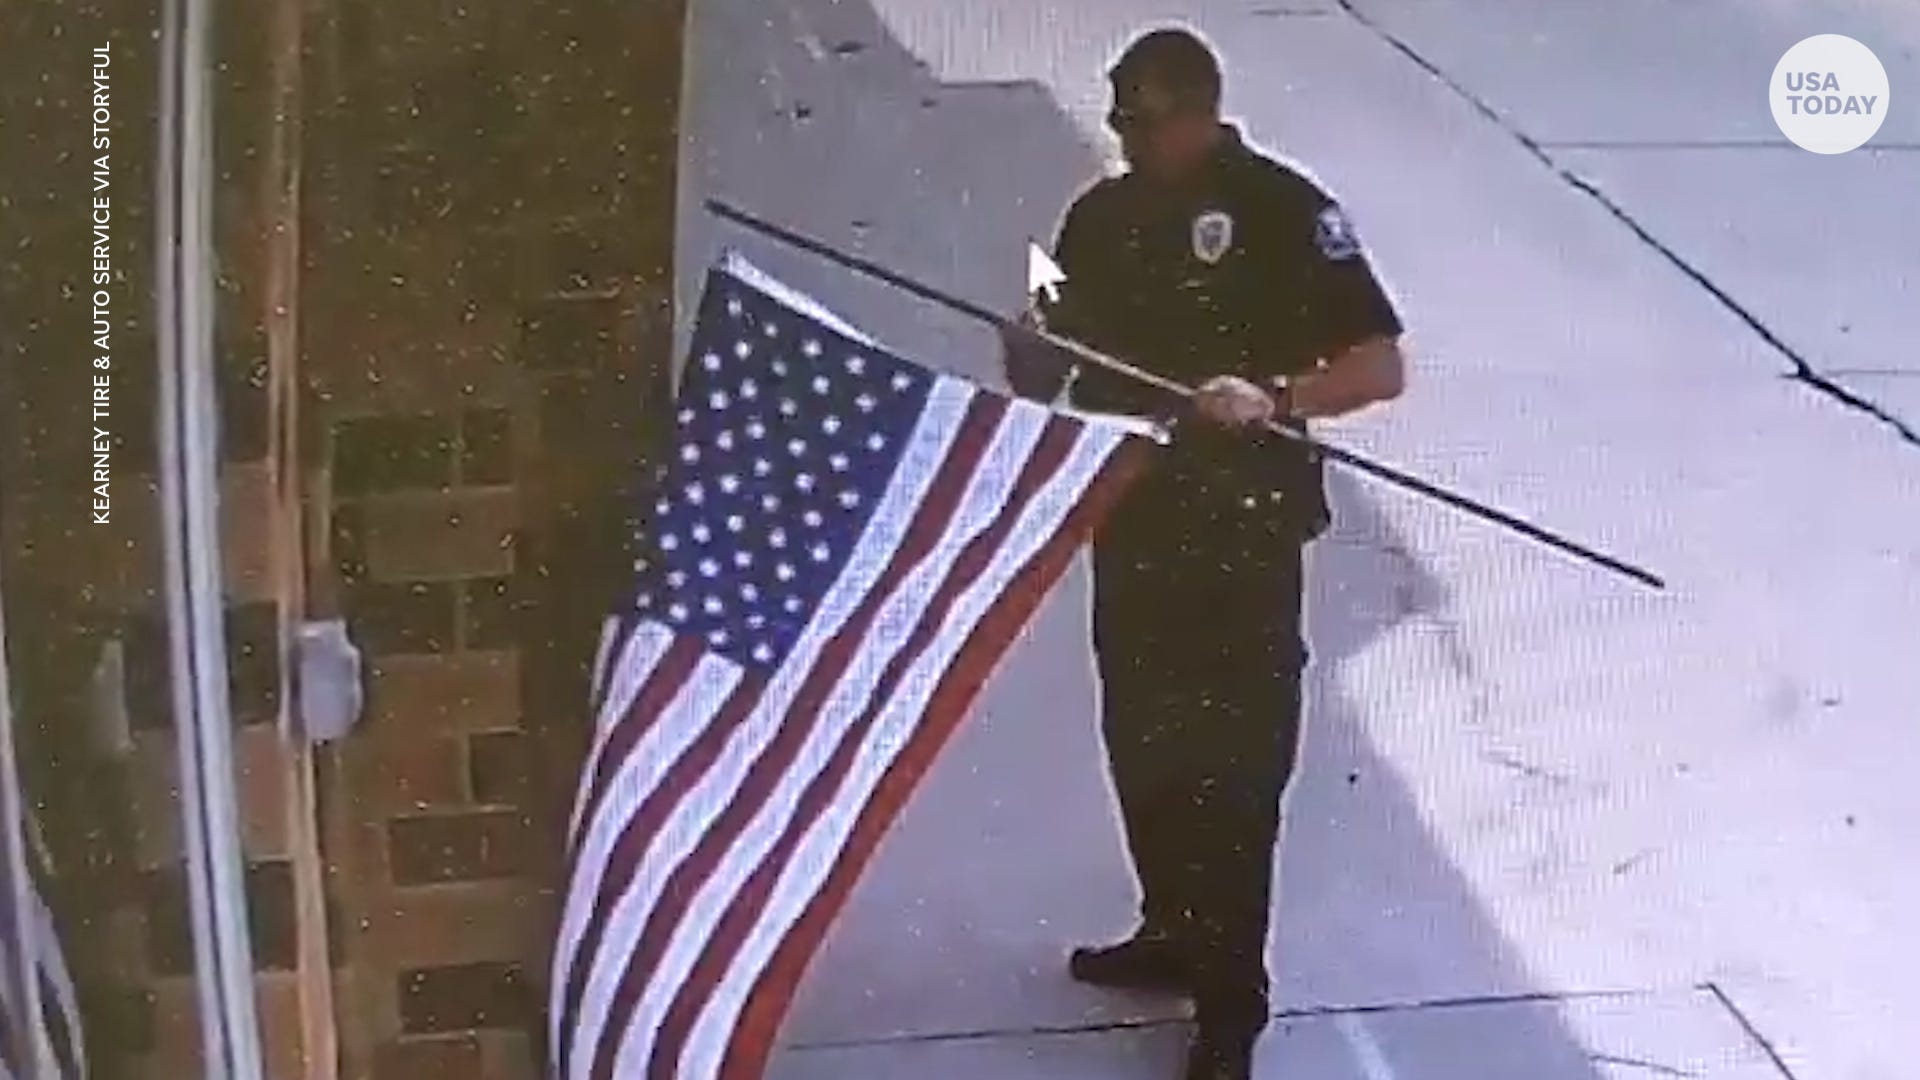 Police officer stops to fix fallen American flag outside of local business